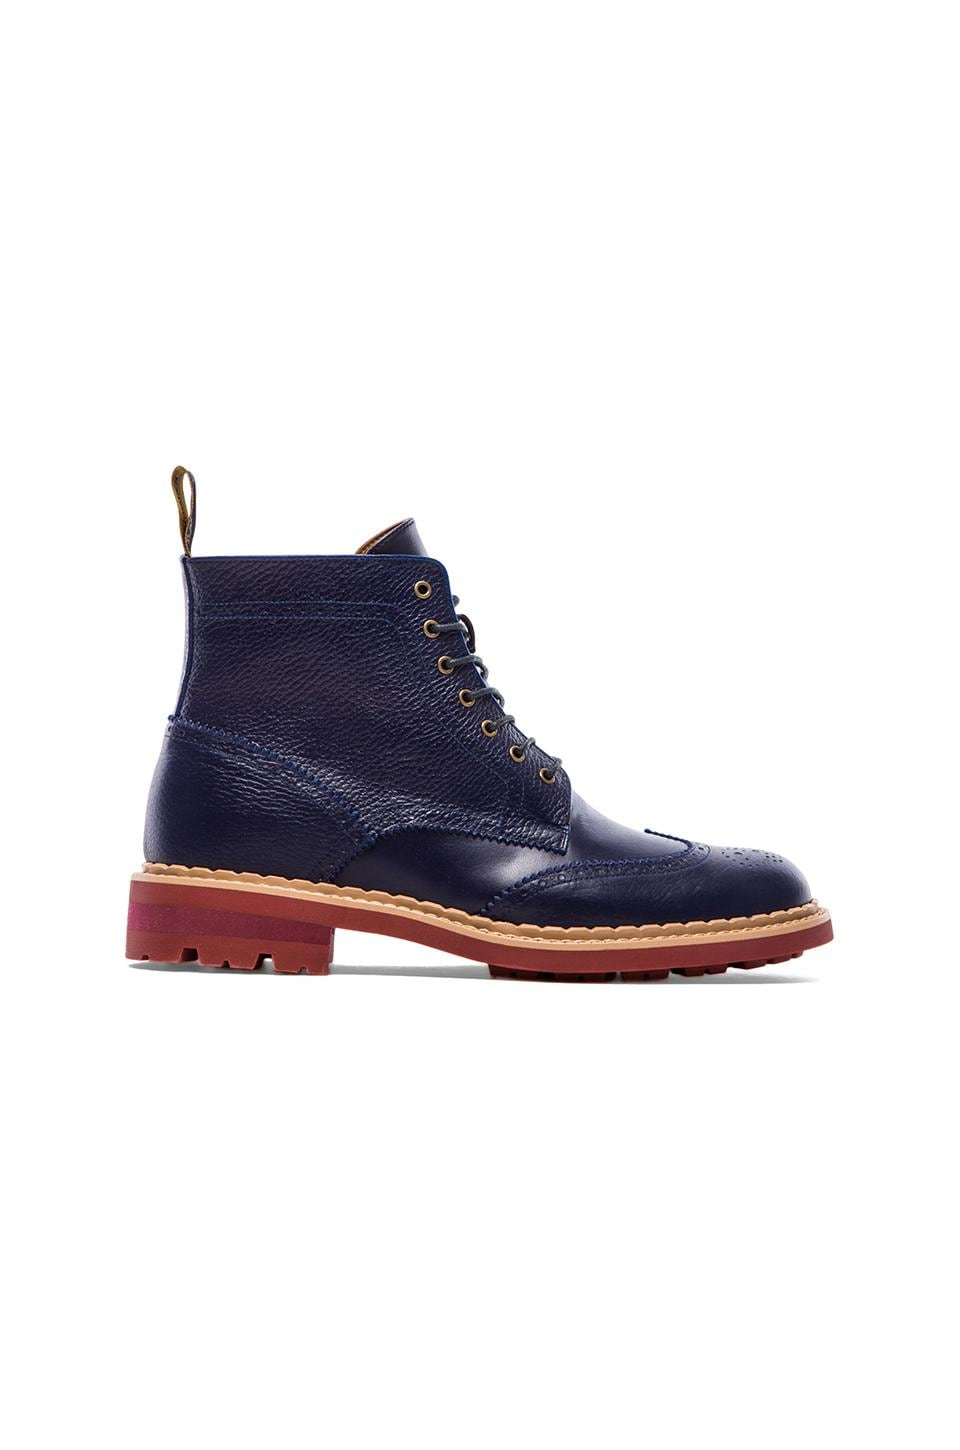 Rain Man Dustin Boot in Navy & Beige & Bric